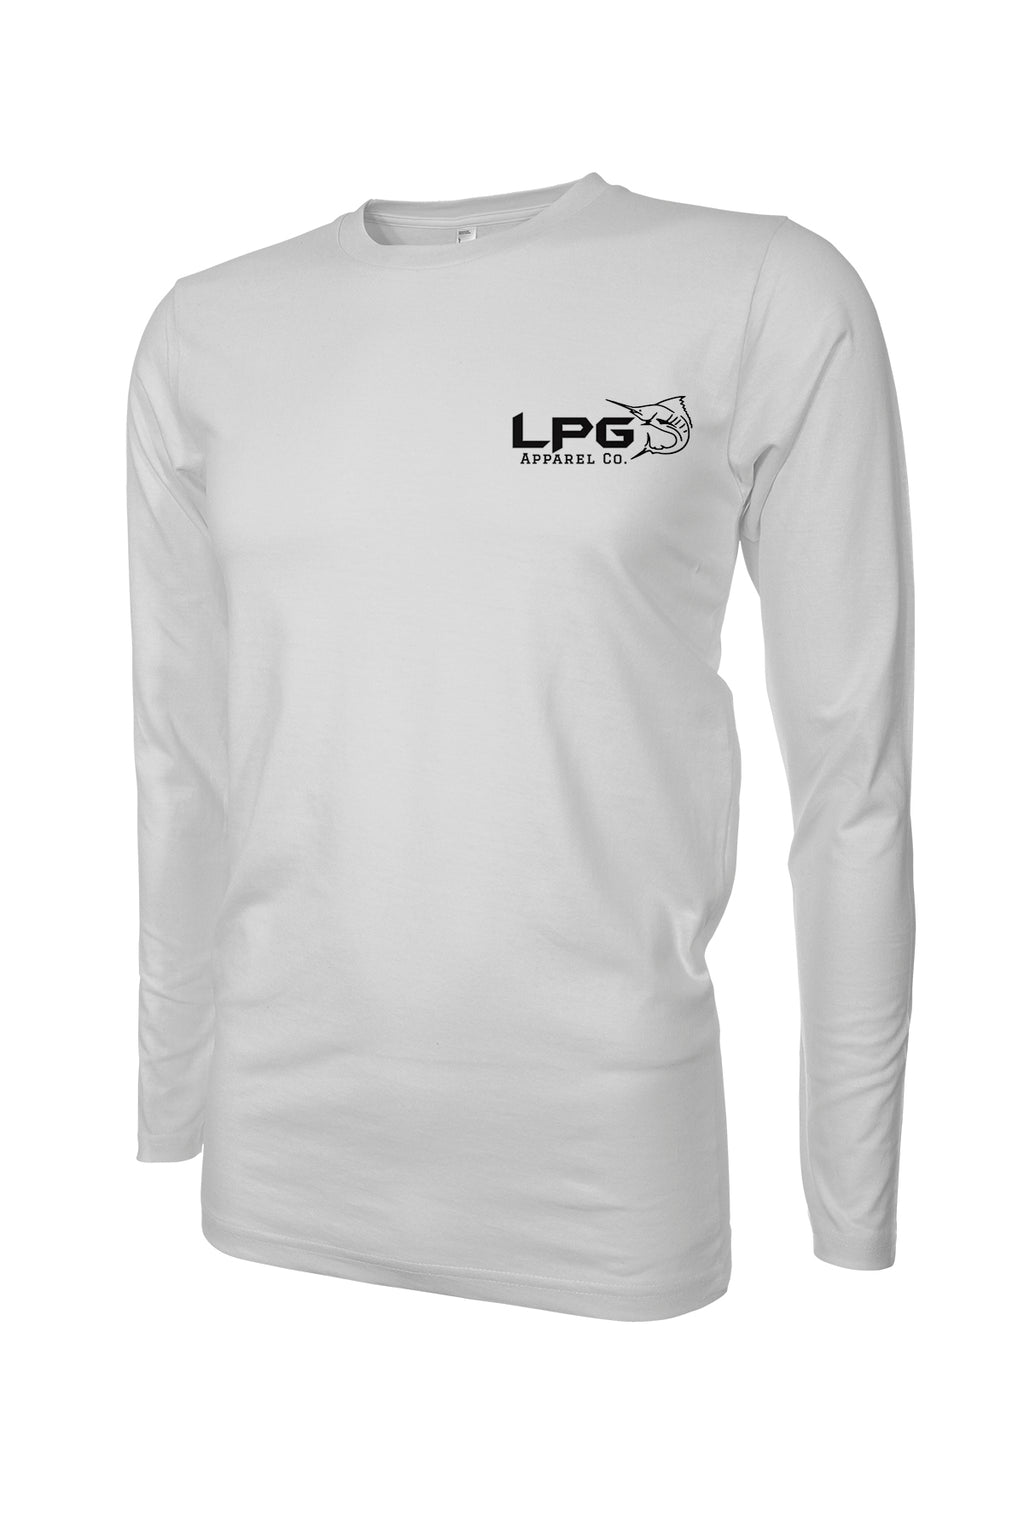 LPG Apparel Co. Pacific Fly Rash Guard LS Performance UPF 50+ Unisex T-Shirt - Lobo Performance Gear